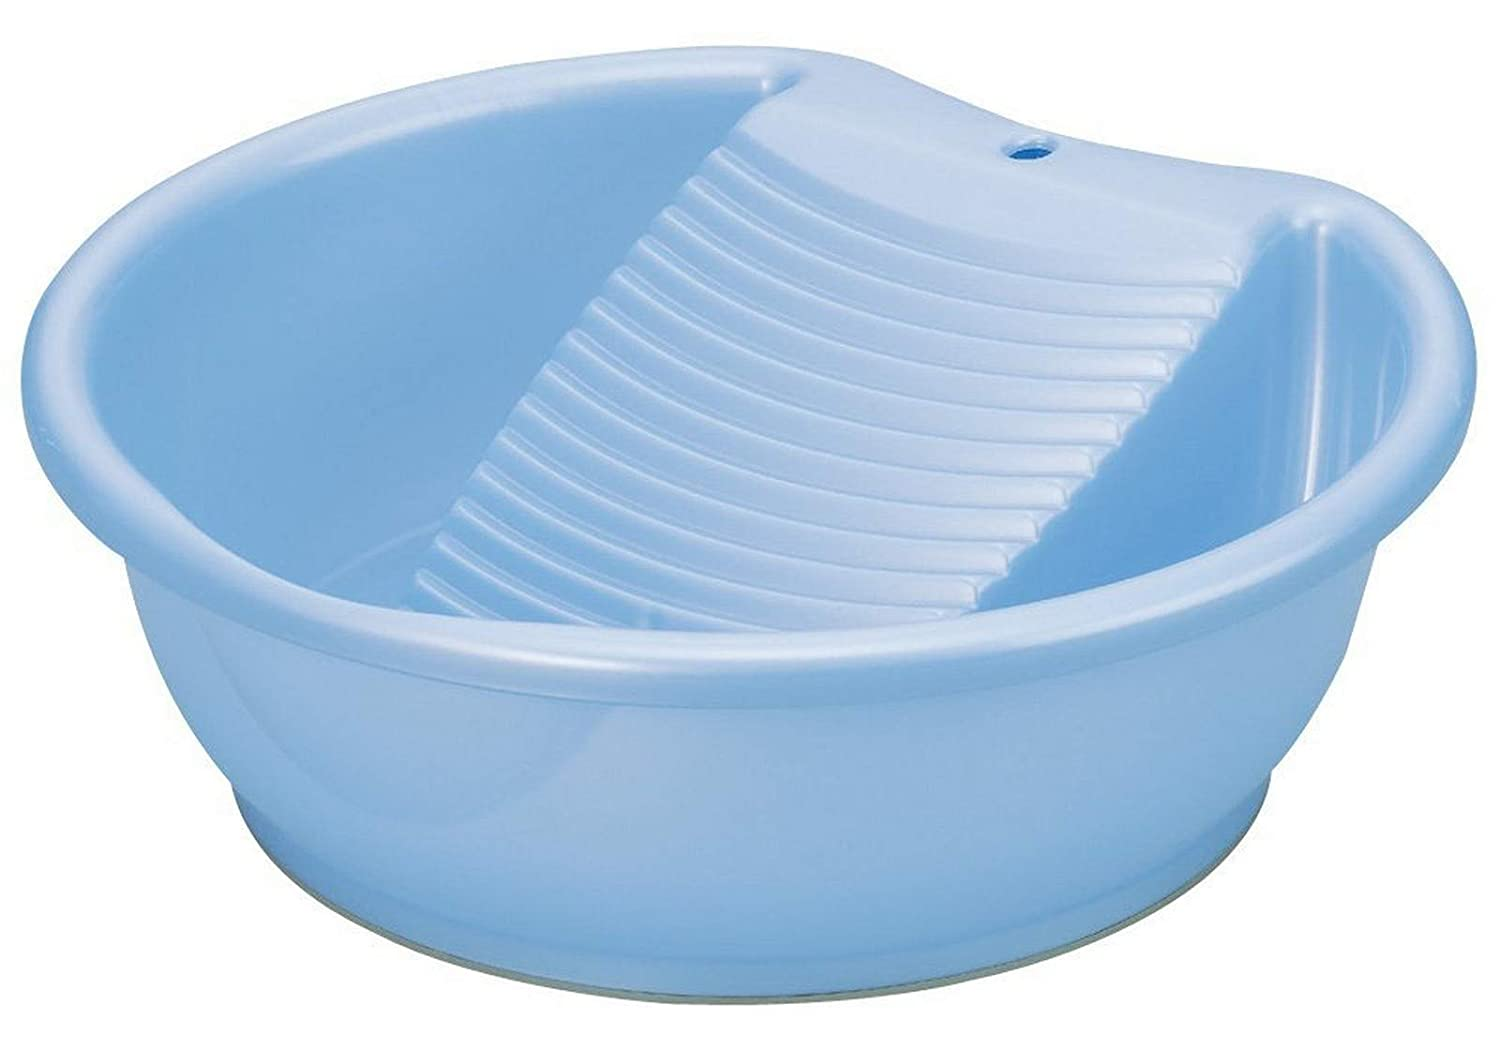 JapanBargain, Japanese Laundry Tub Basin with Washboard Laundry Board for Hand Wash Clothes Made in Japan, Plastic, Blue